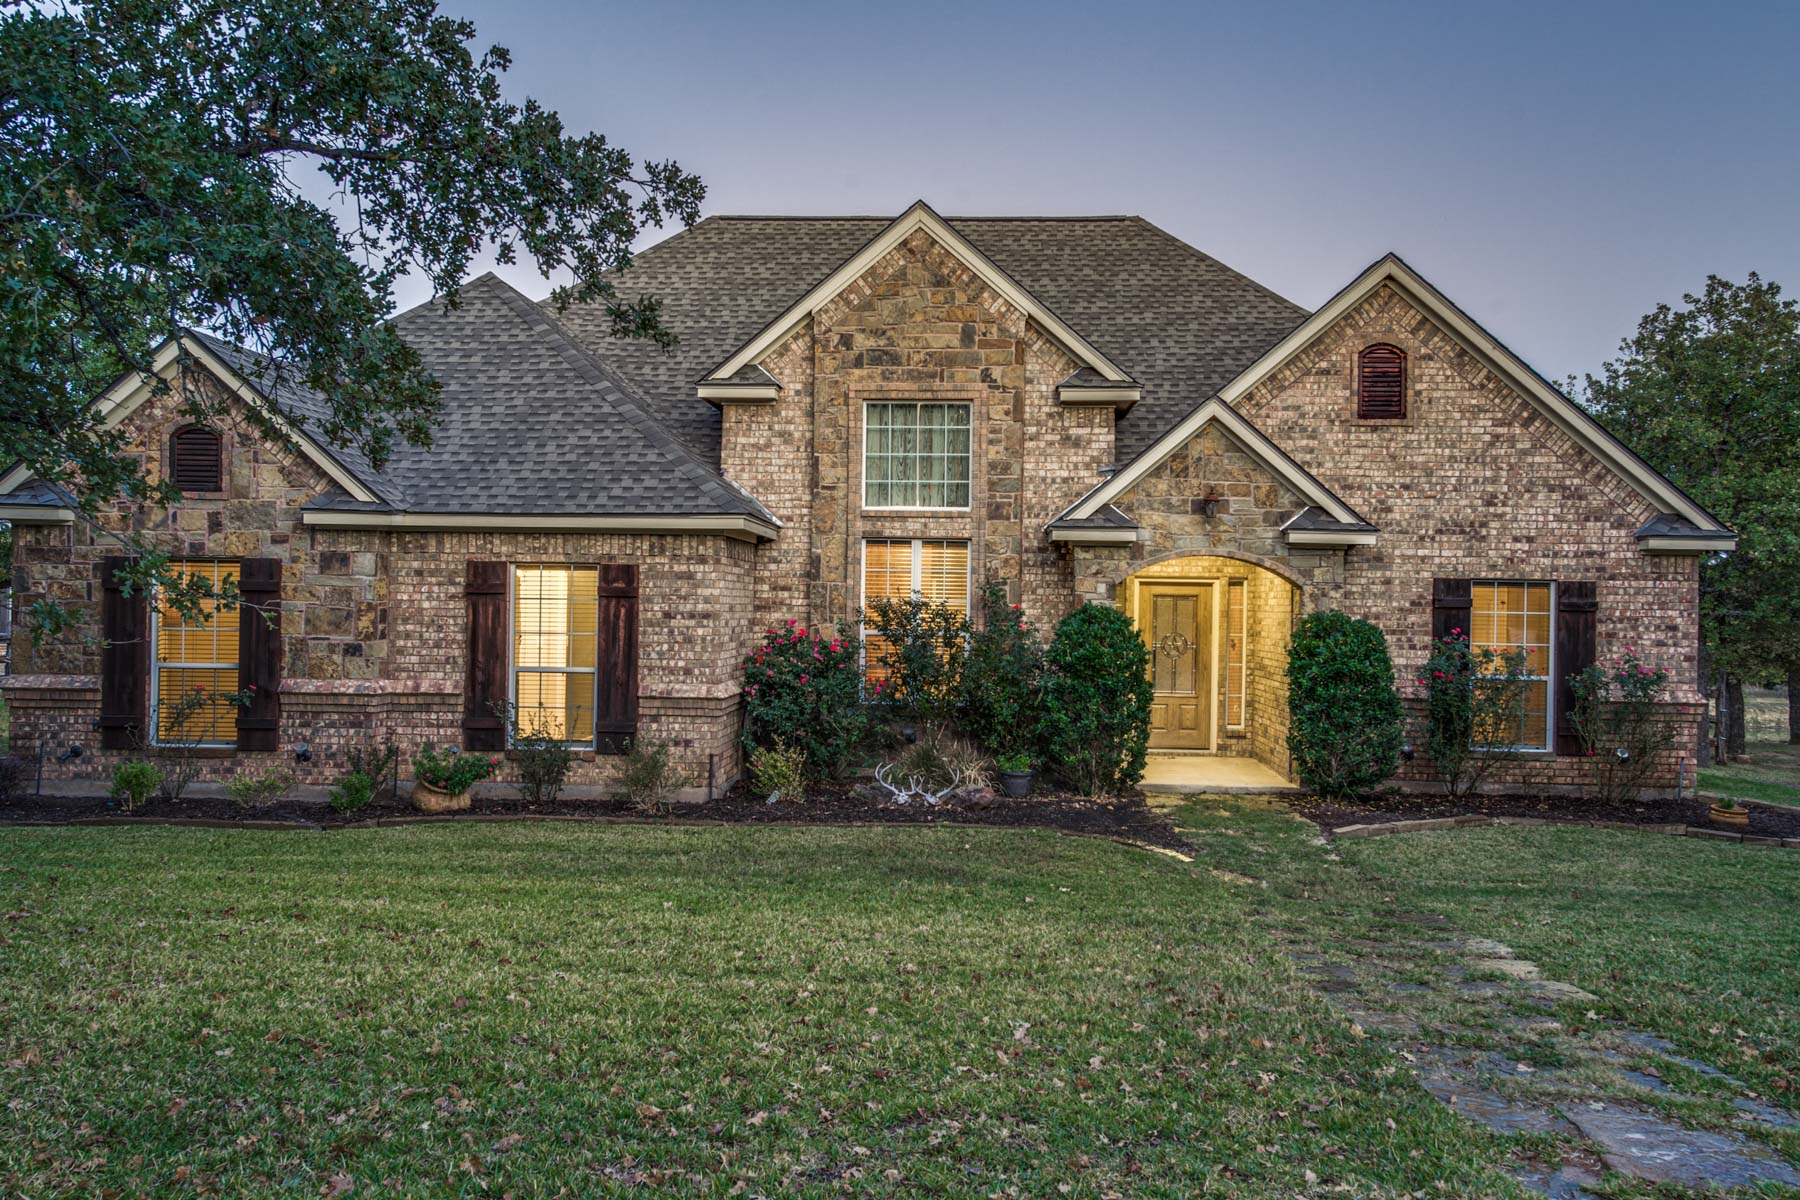 Single Family Home for Sale at All the amenities of a master planned community on a private 10 Acre lot 270 Silver Lakes Drive Sunset, Texas 76270 United States